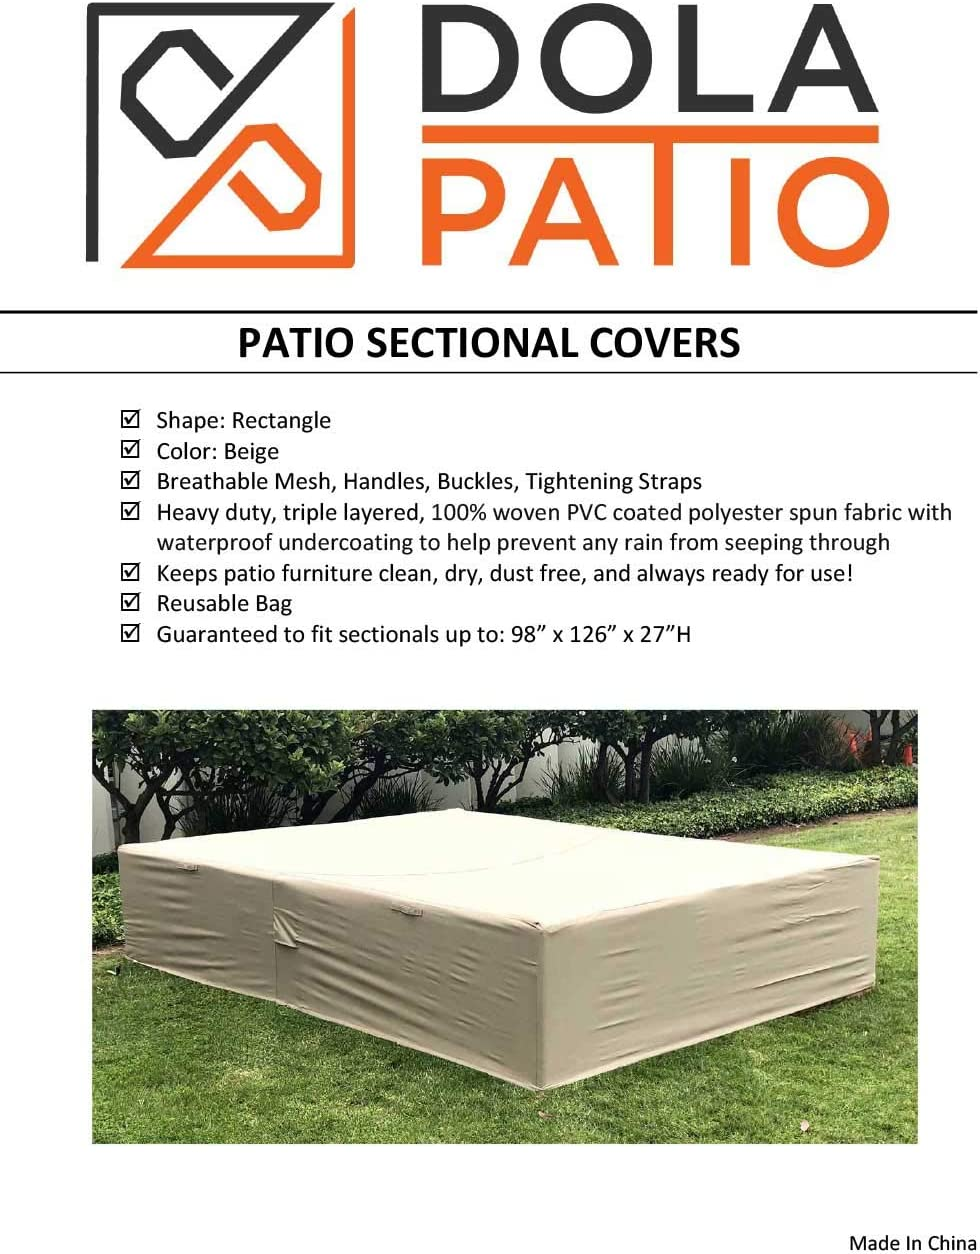 Dola Patio Furniture Covers Large Outdoor Sofa Sectional Furniture Cover Waterproof Beige Super Heavy Polyester Fabric Breathable 98 x 126 x 27